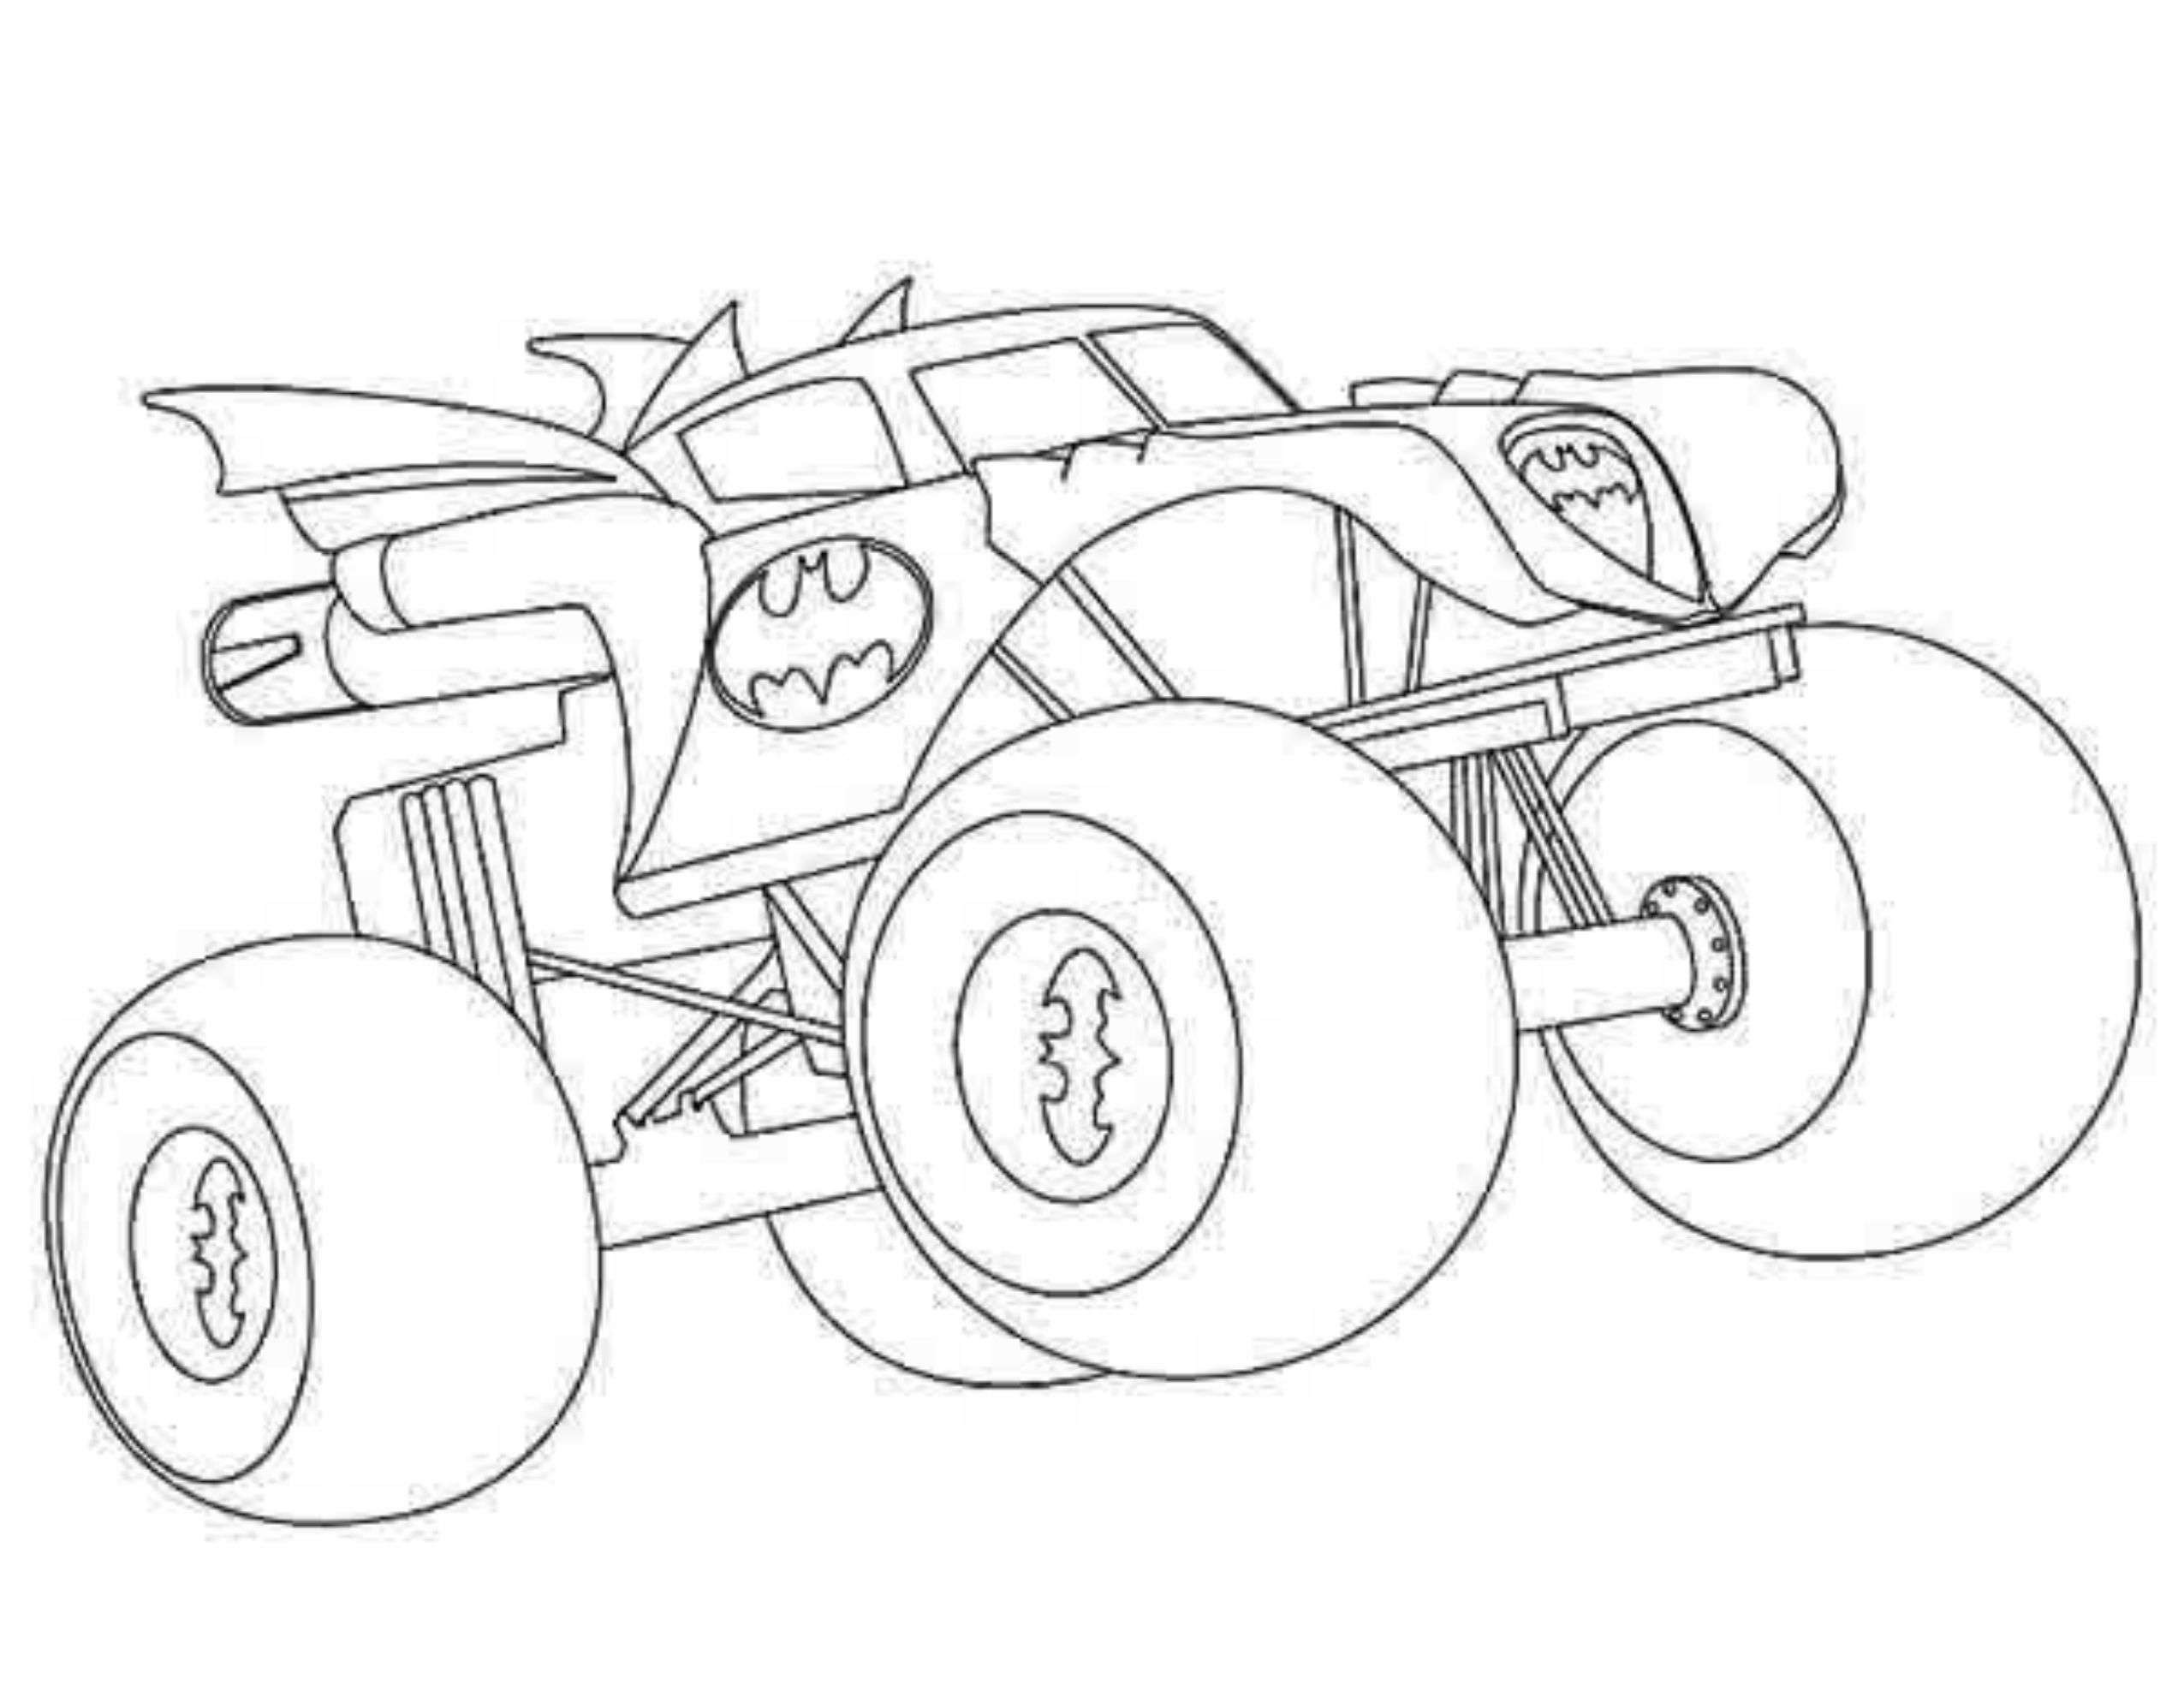 Police Car Line Drawing At Getdrawings